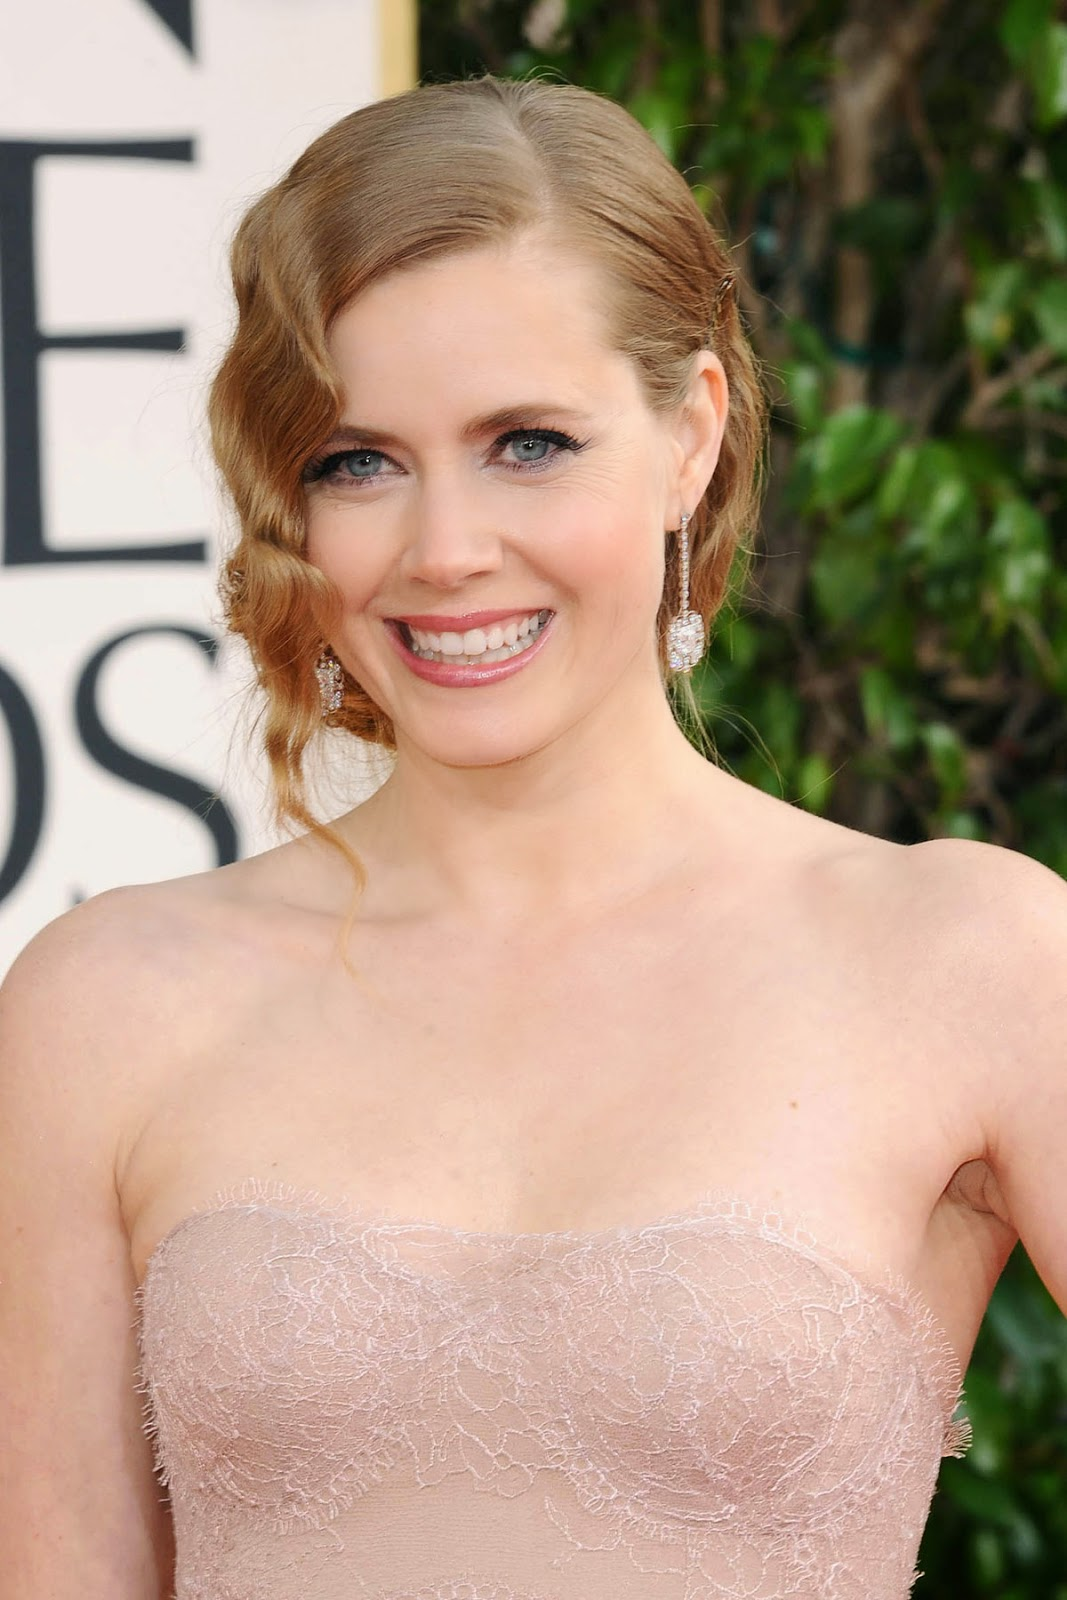 Latest Celebrity Photos: Amy Adams Hot and Sexy Wallpapers Amy Adams